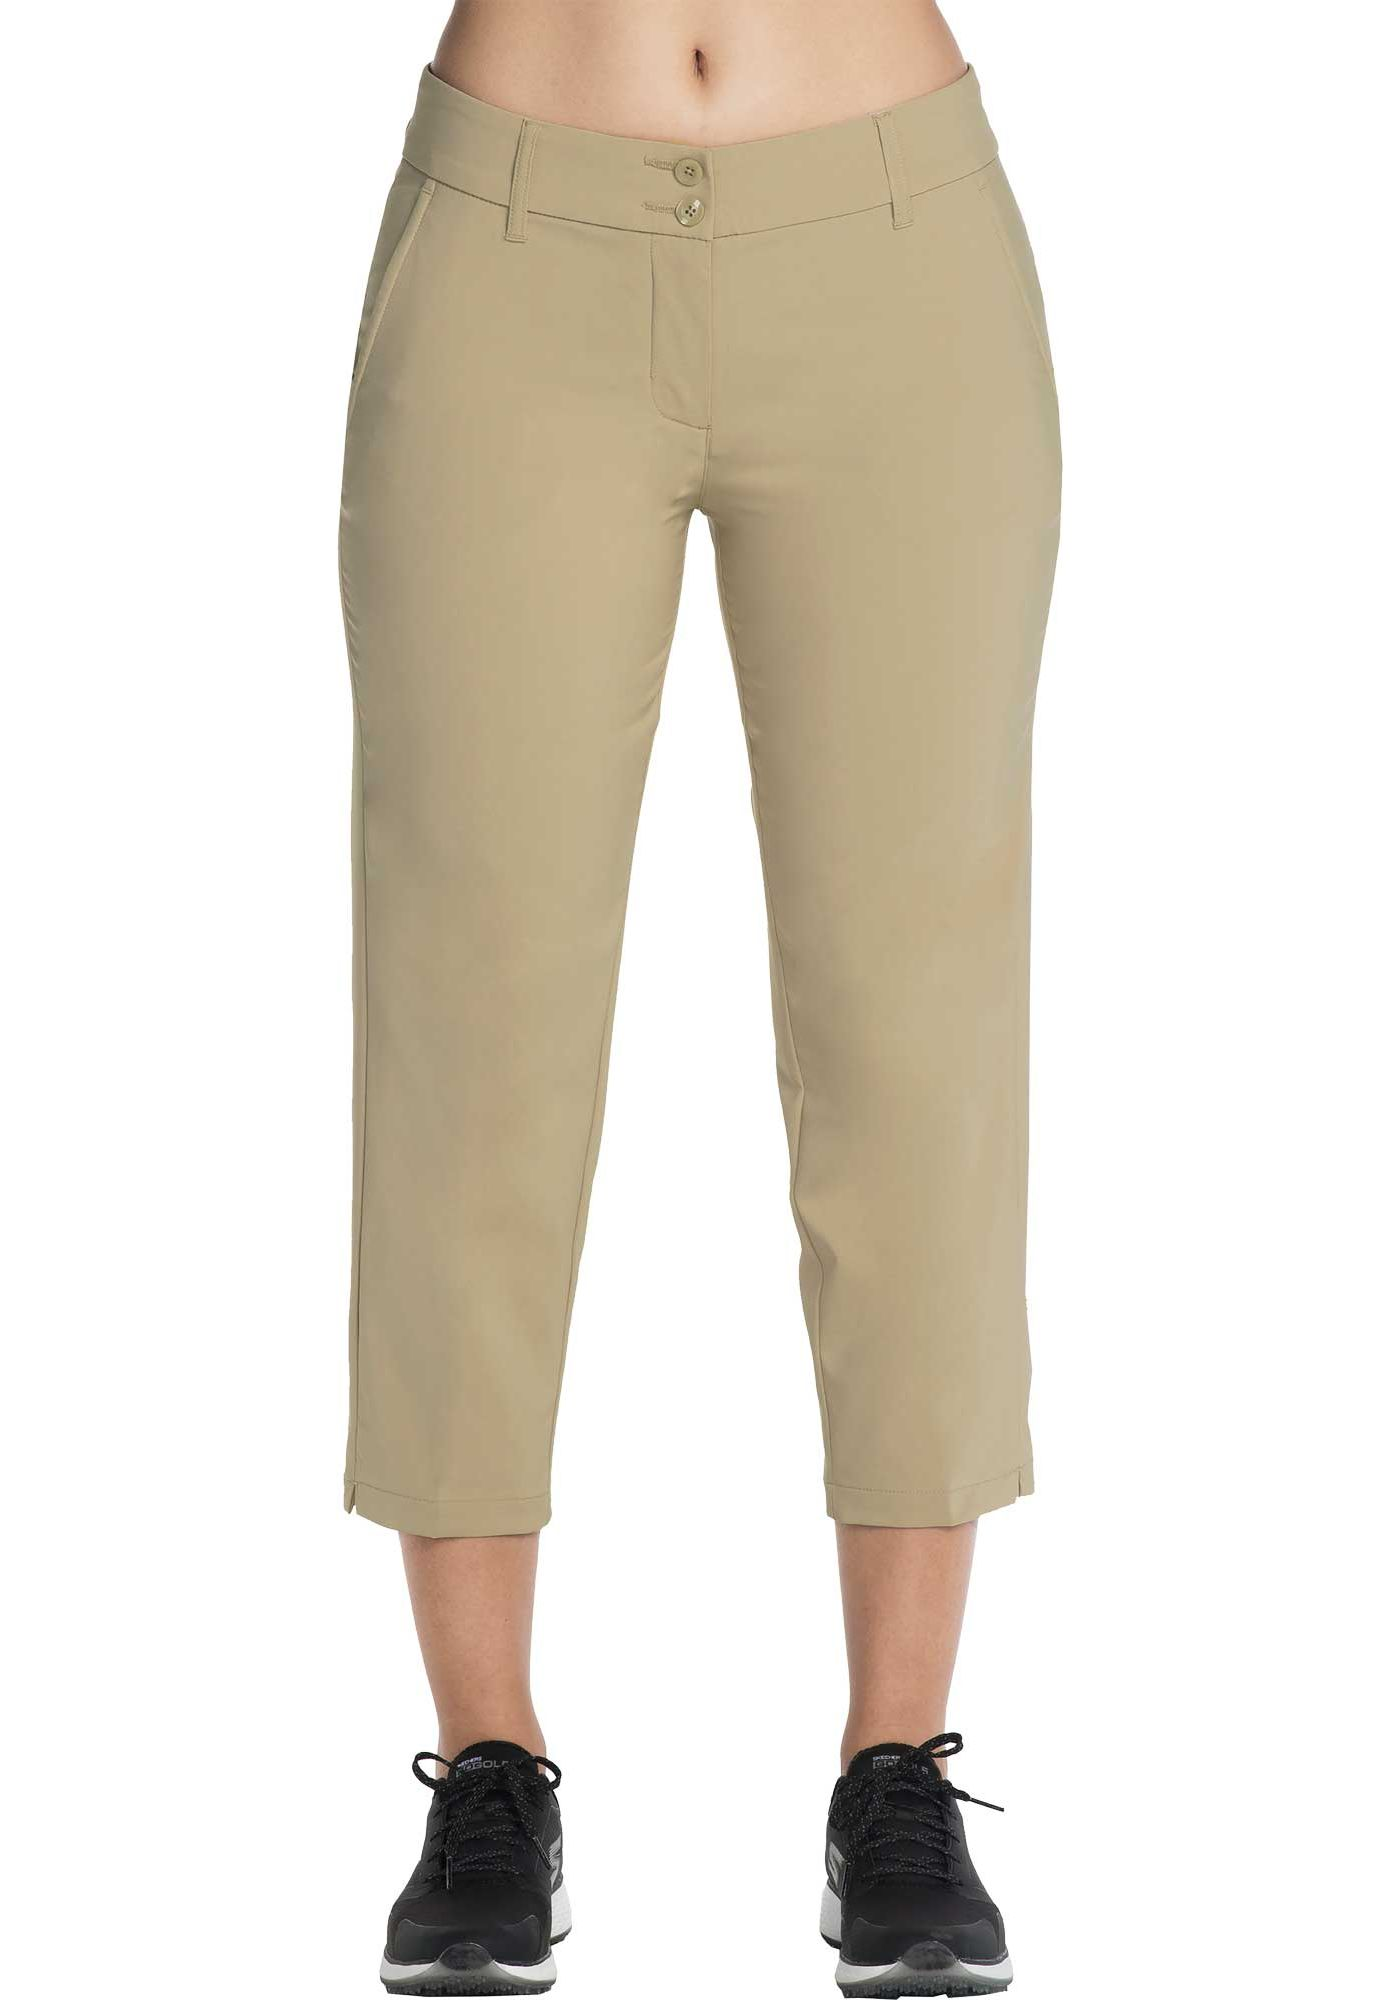 Skechers Women's Go Golf High Side Crop Golf Pants